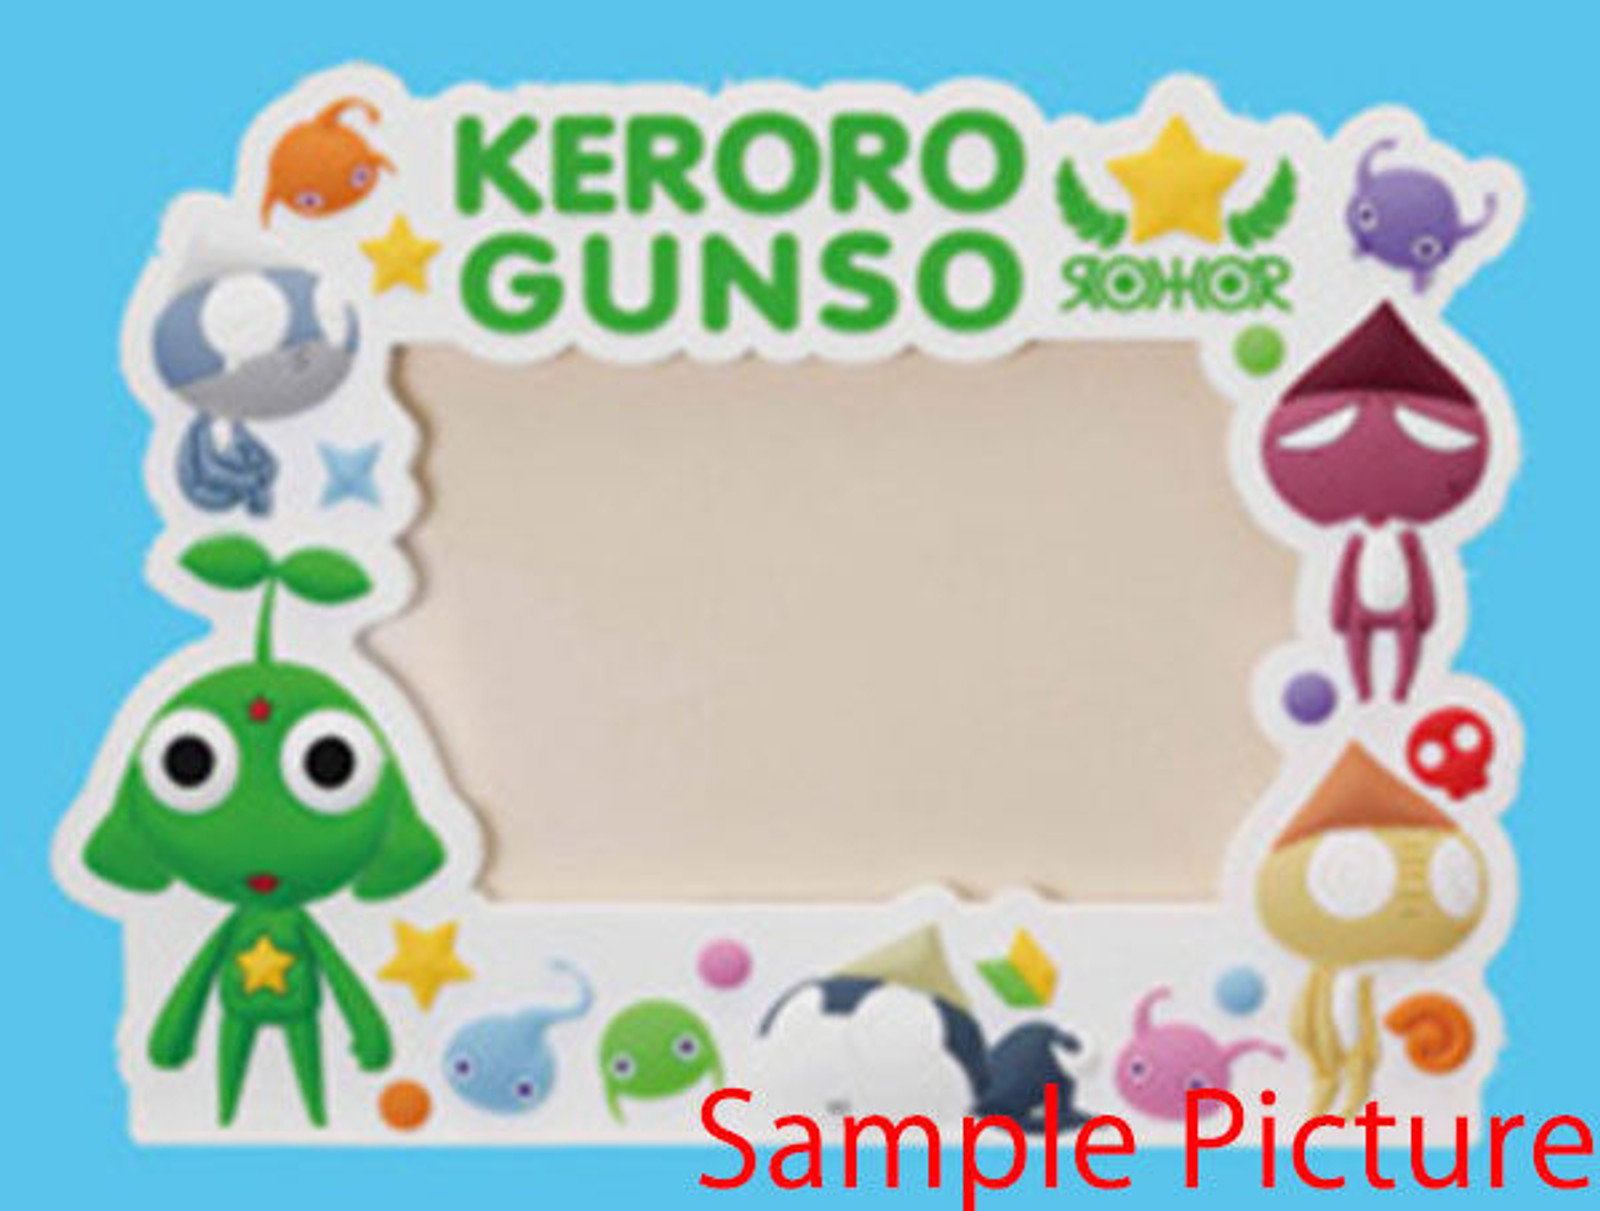 Sgt. Frog Keroro Gunso Sergeant Photo Frame Stand JAPAN ANIME MANGA FROG